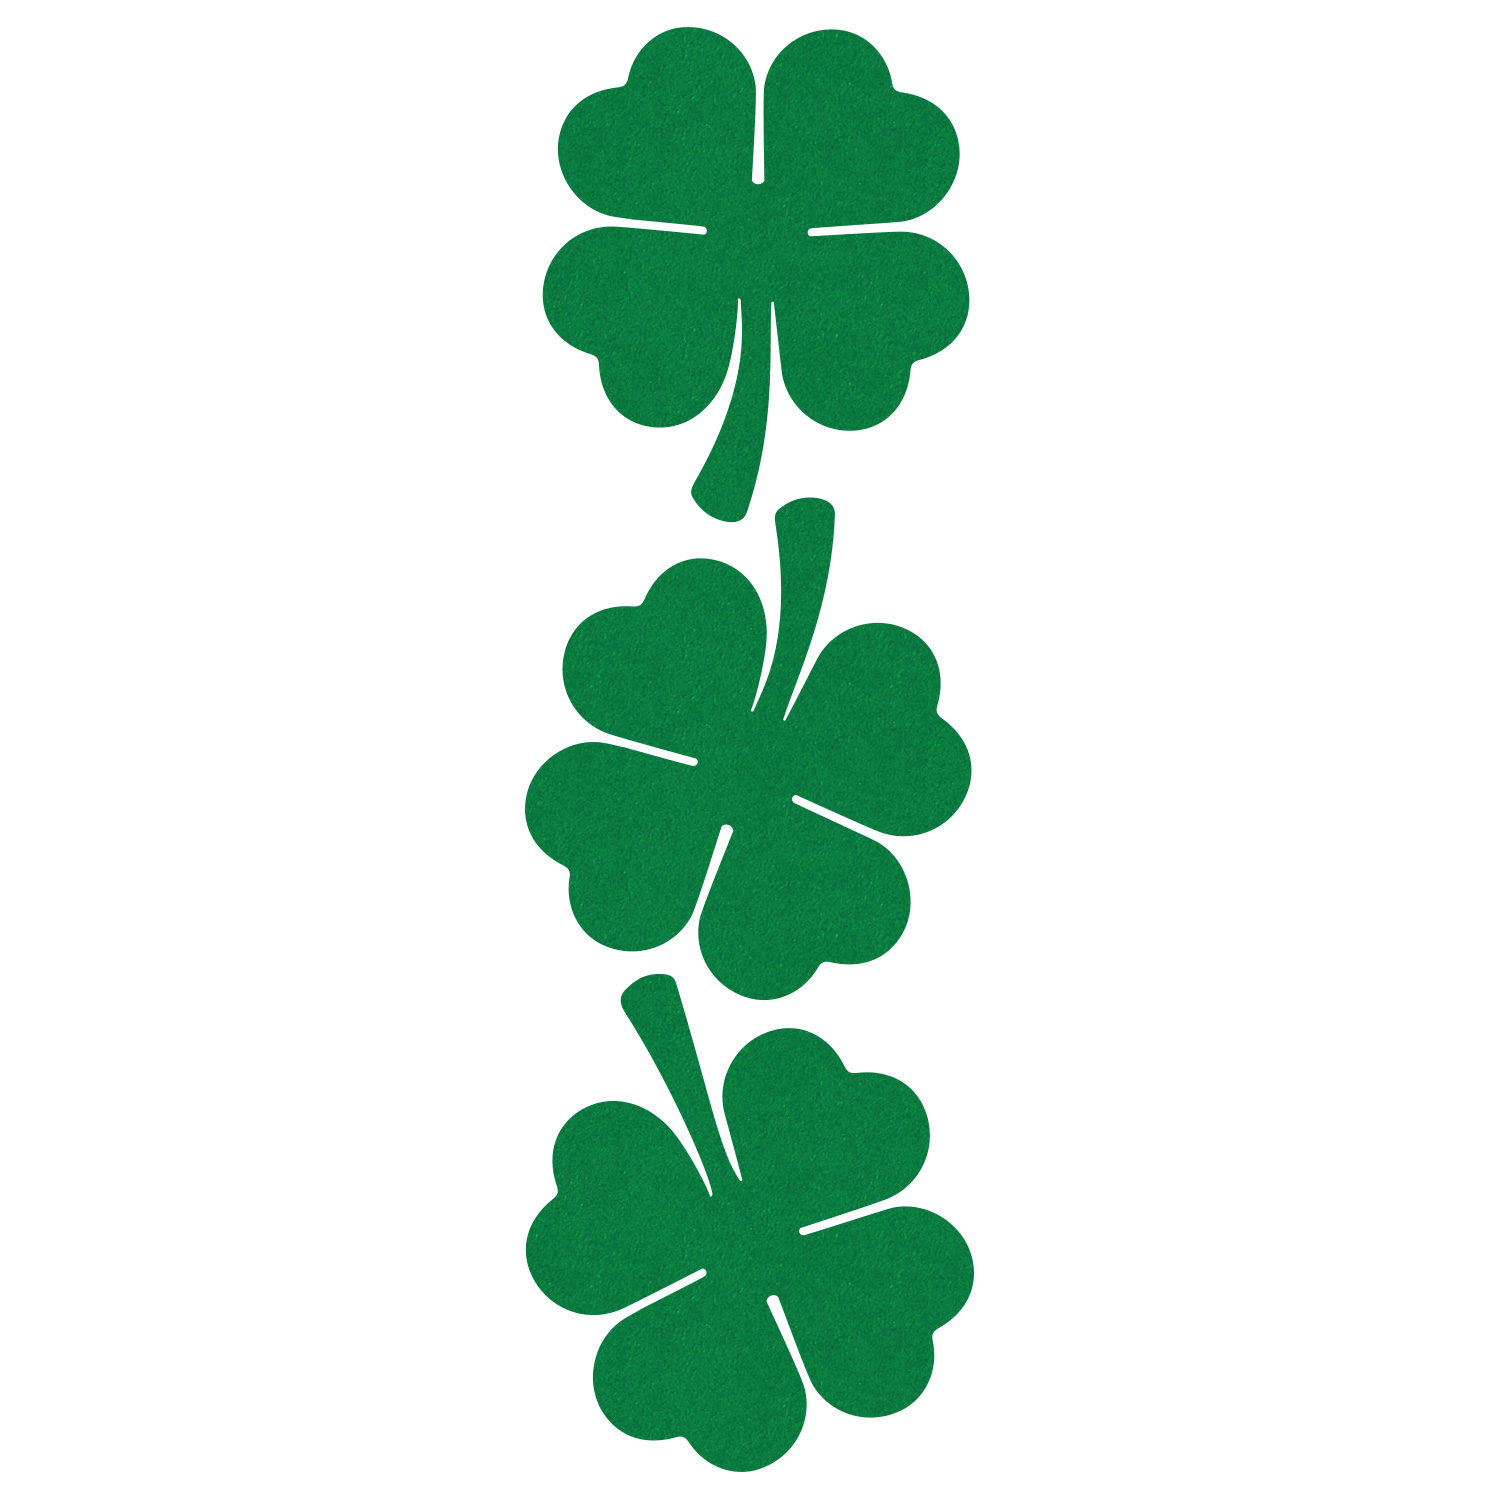 3 Leaf Clover Clipart at GetDrawings.com.